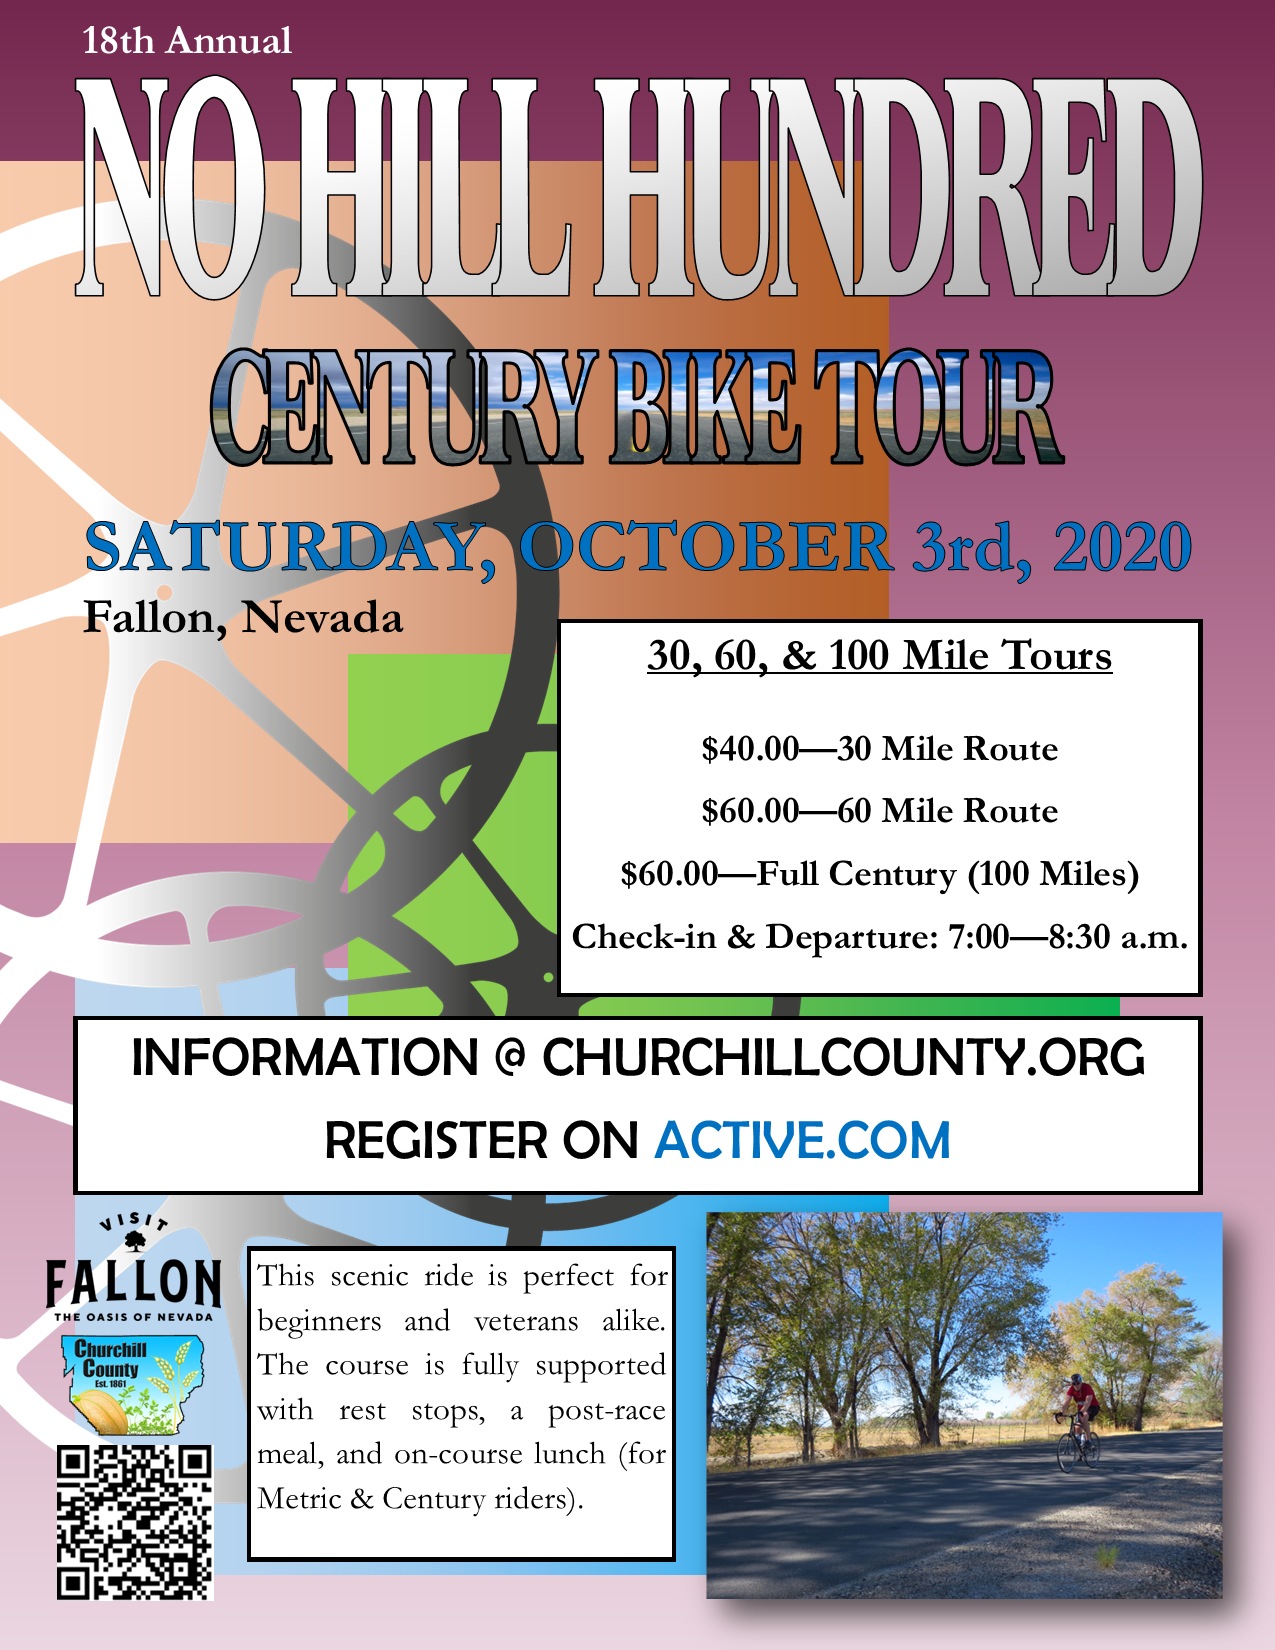 No Hill Hundred Century Bike Tour (2020) Flyer, Saturday, October 3rd.  30, 60, and 100 mile routes.